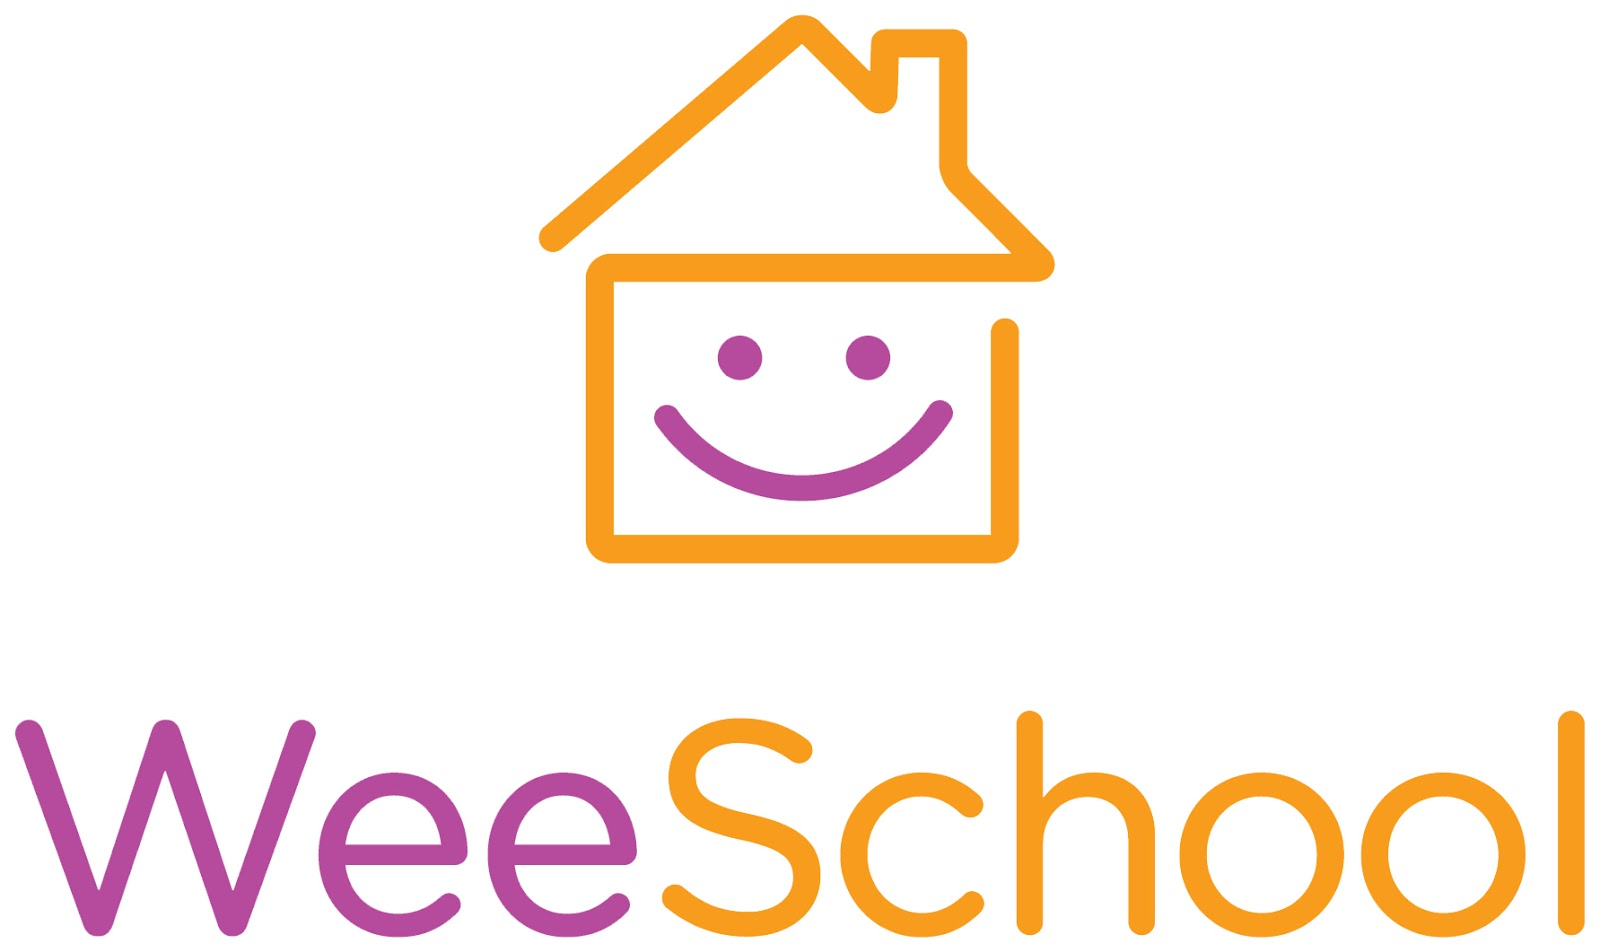 weeschool logo new.jpg